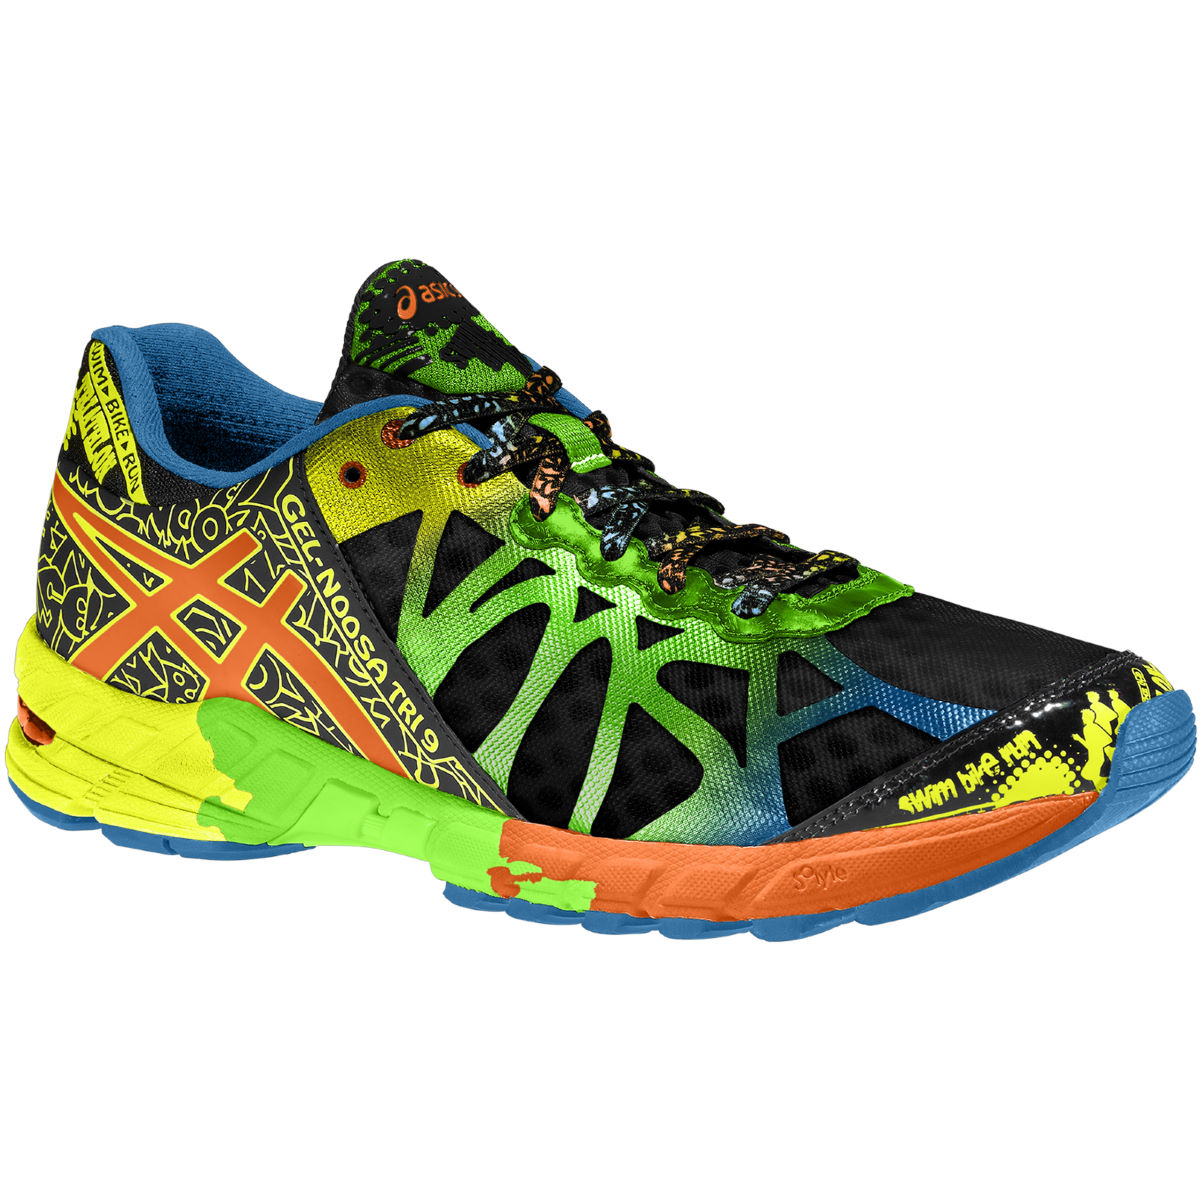 Asics Gel-Noosa Tri 9 Shoes - AW14